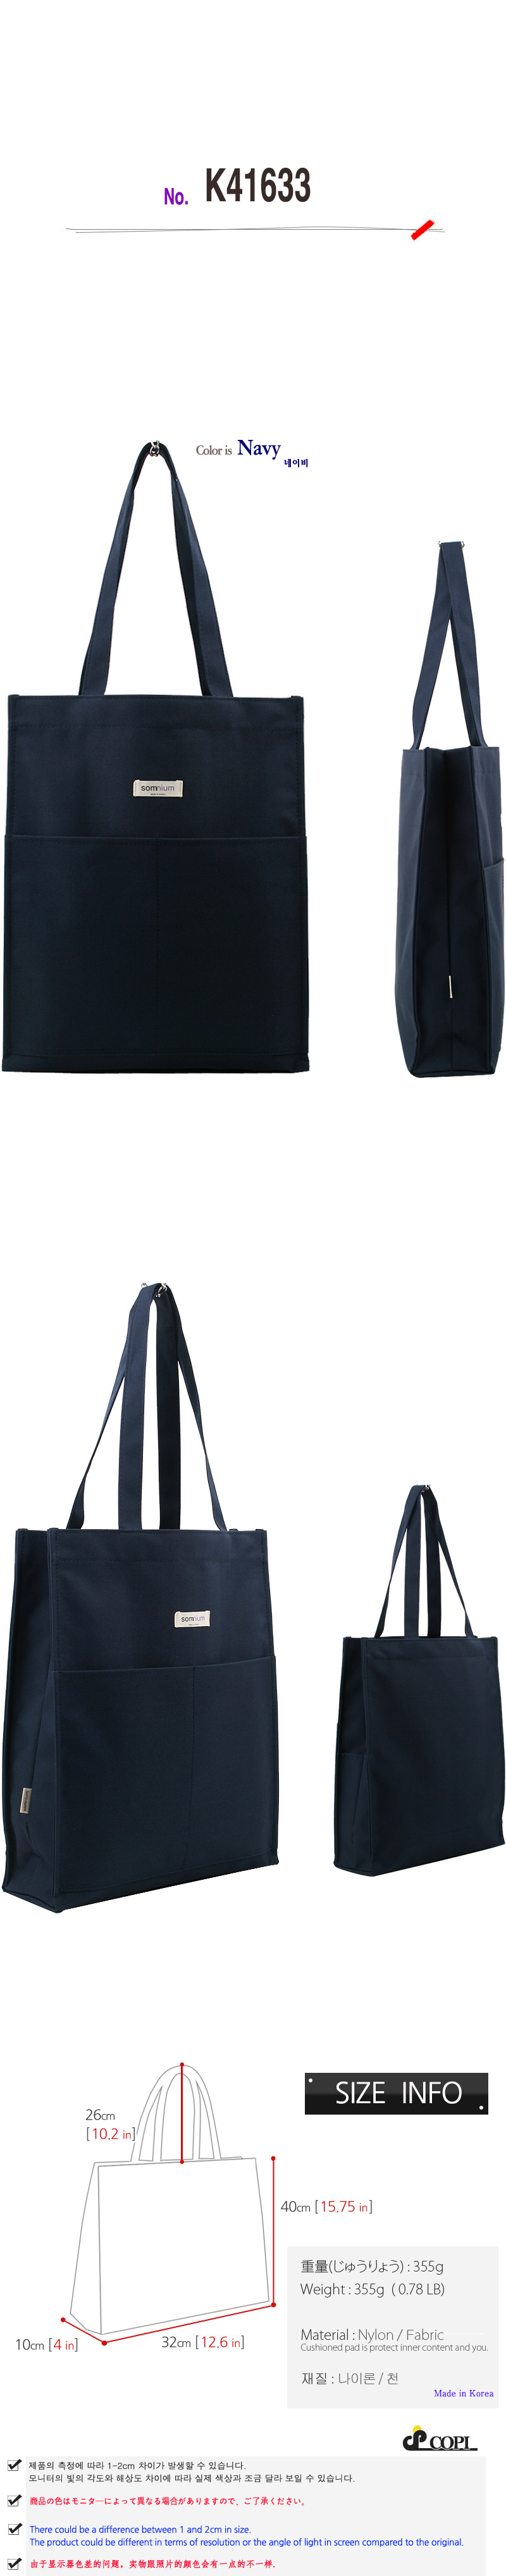 Shoulder&tote bag no.K41633view